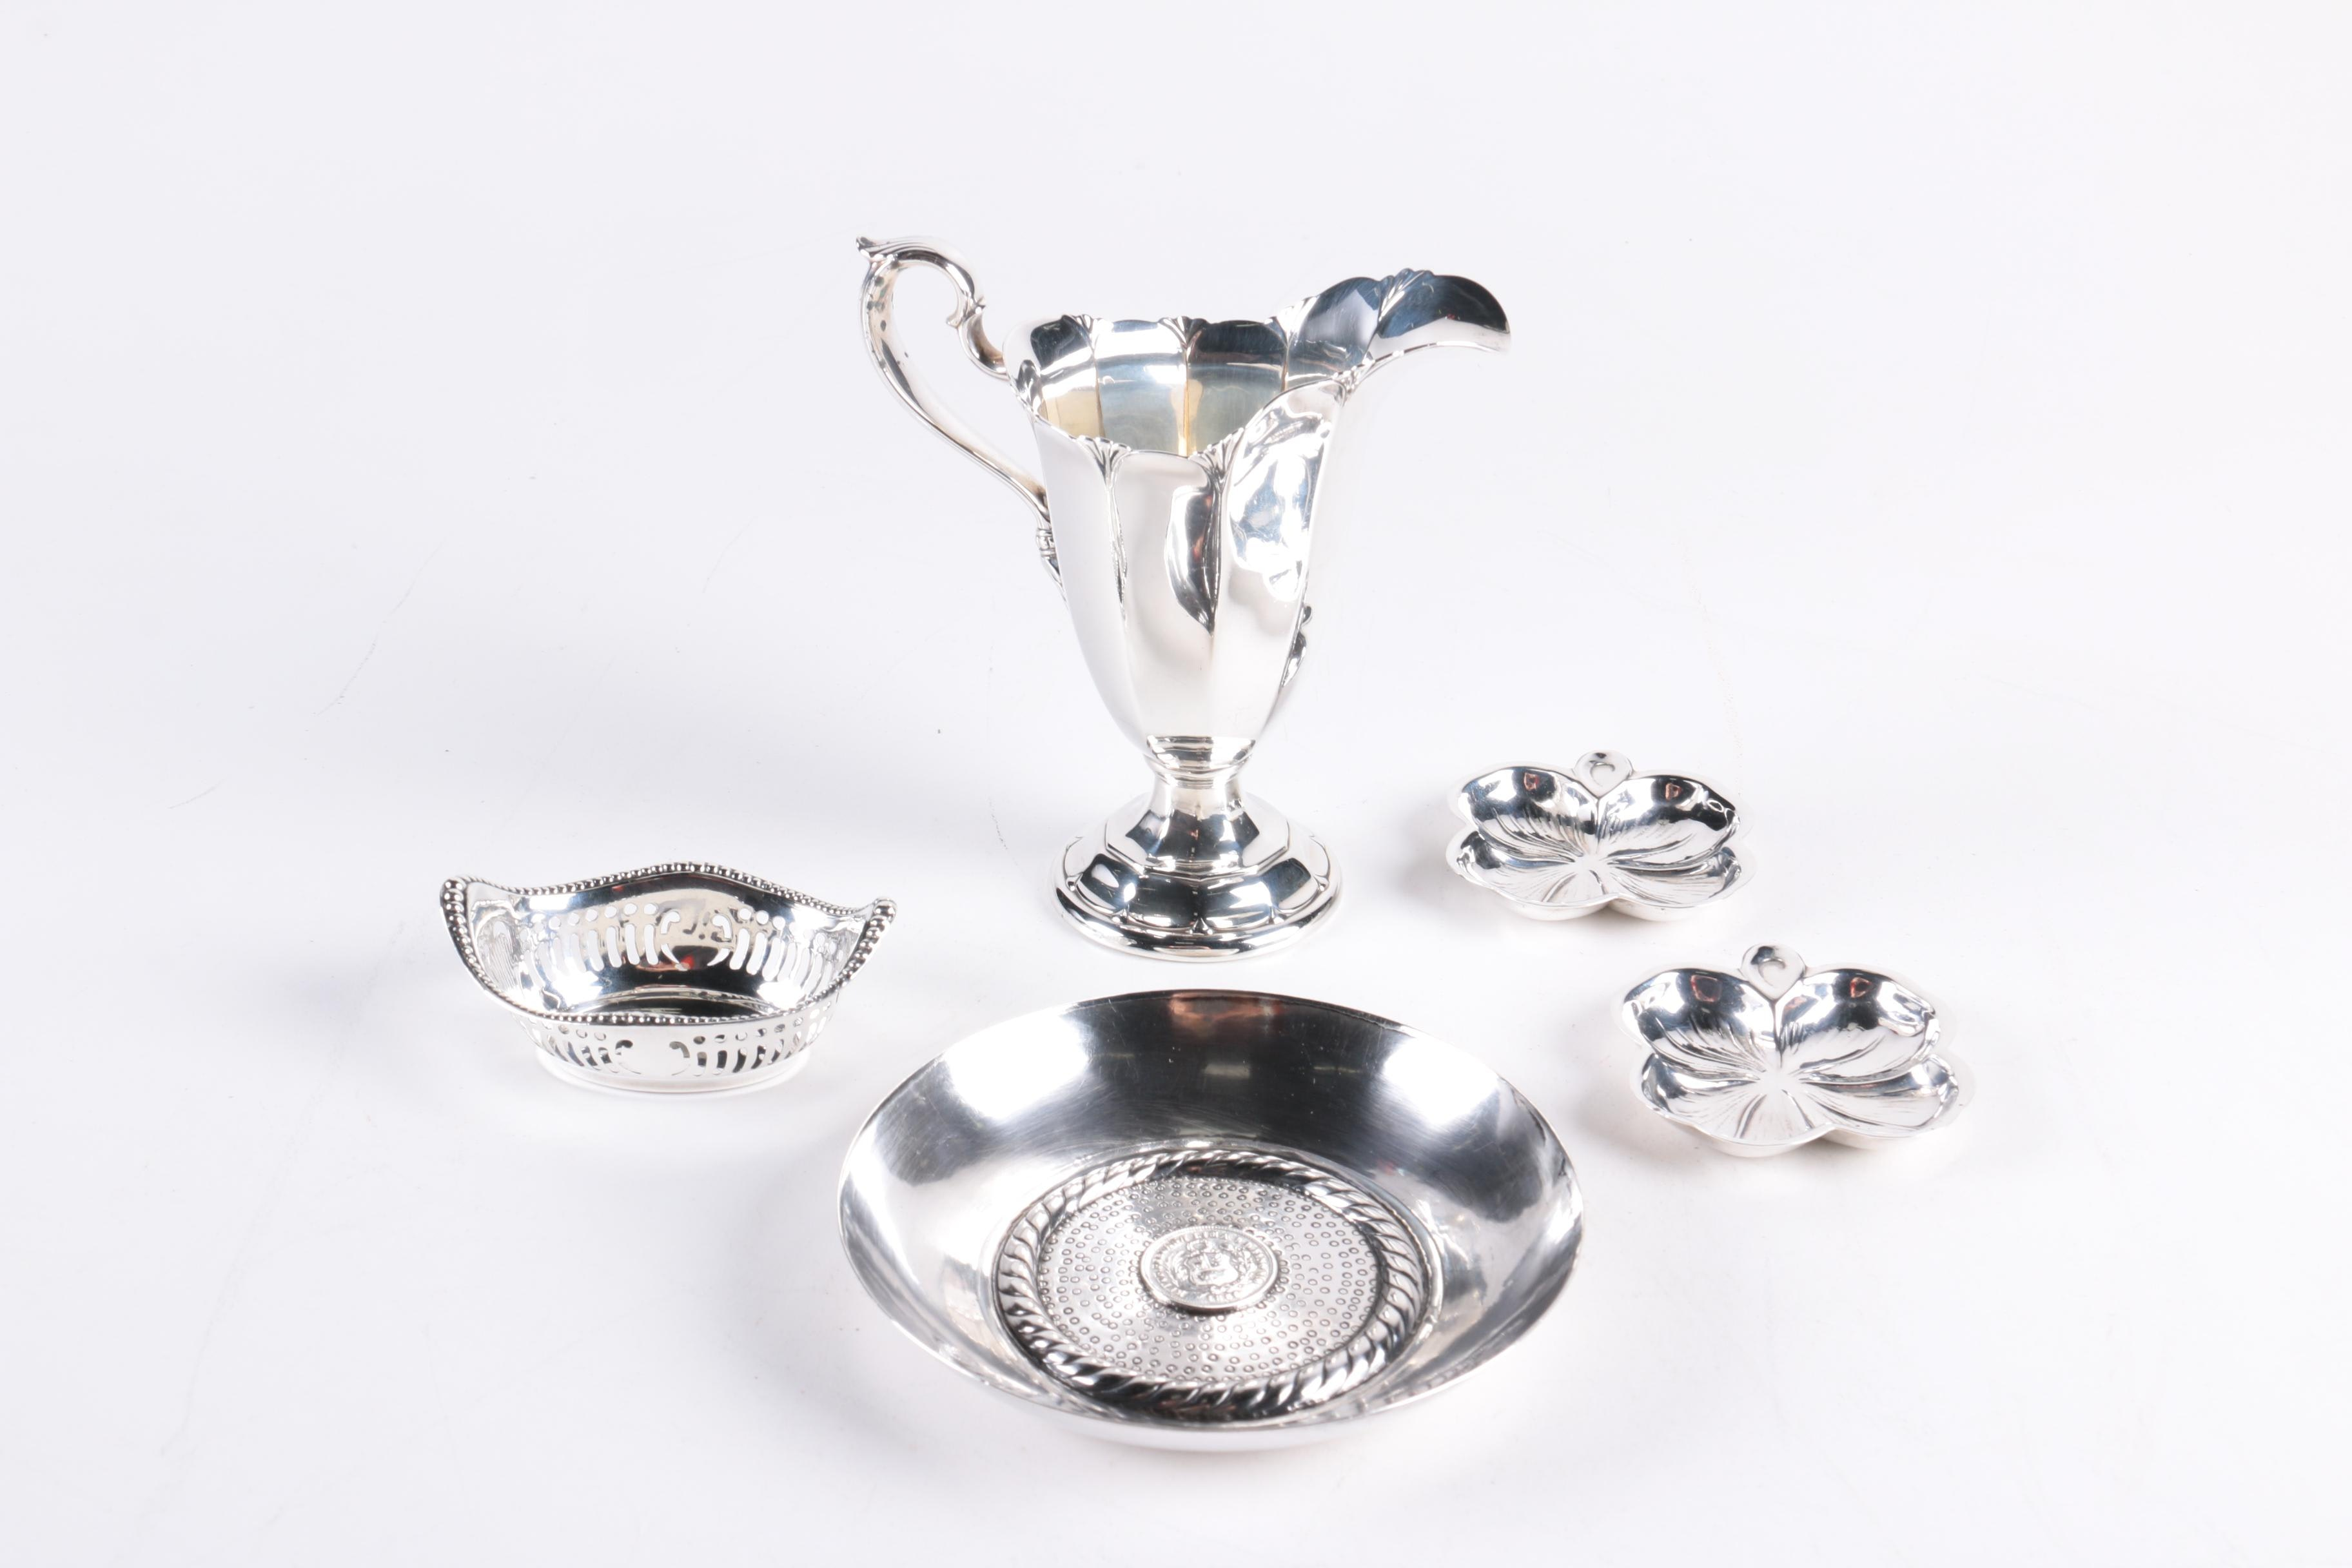 Gorham and Lenox Sterling Tableware with Peruvian 1866 1/5 Sol Sterling Bowl ...  sc 1 st  EBTH.com & Gorham and Lenox Sterling Tableware with Peruvian 1866 1/5 Sol ...